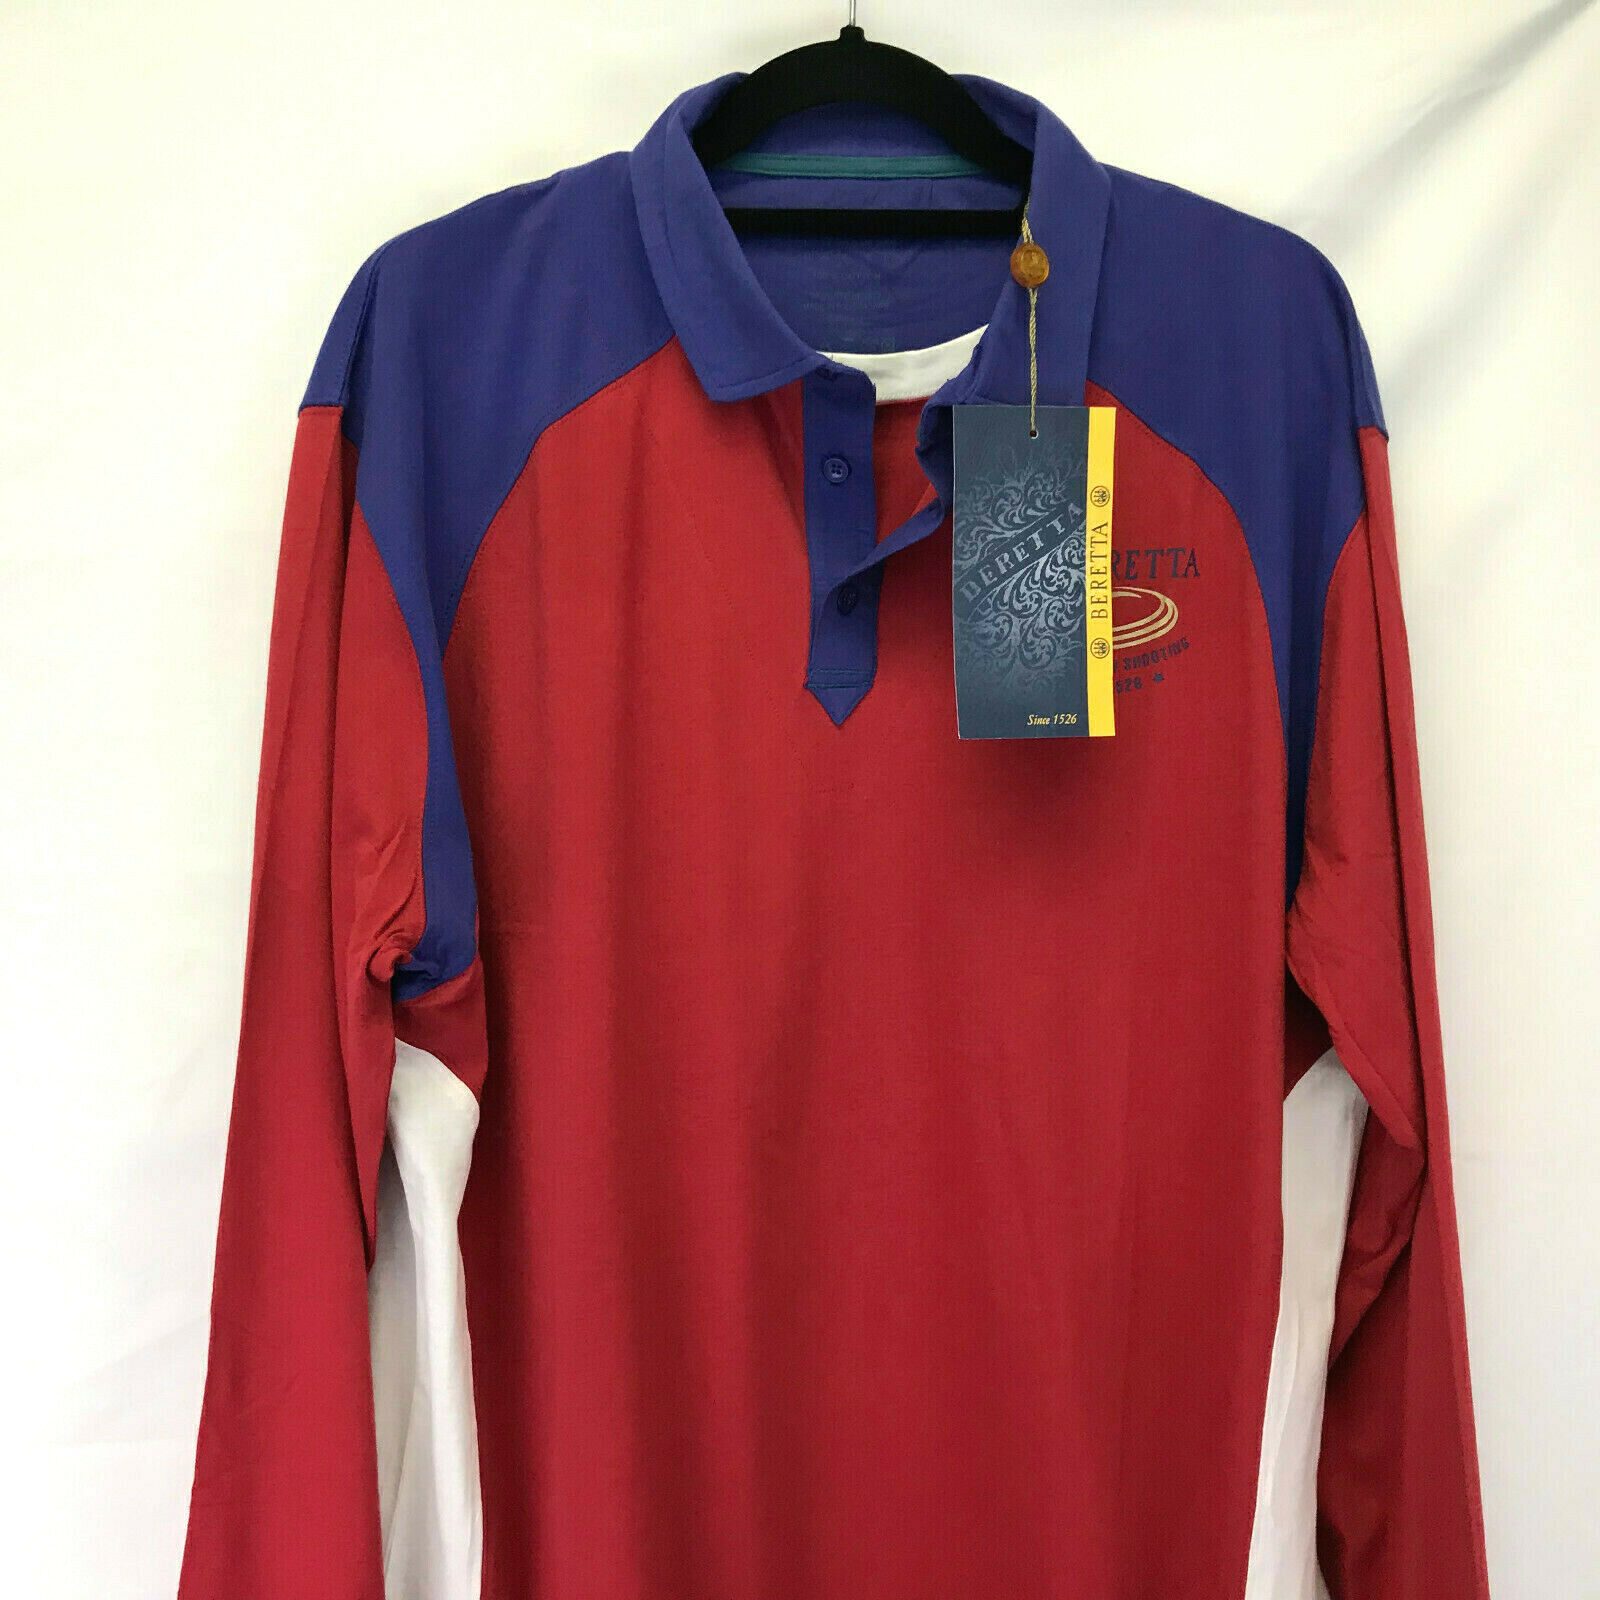 BERETTA SHOOTING SHIRT SIZE L LARGE US blueE RED TS34  DOUBLE COLLAR LONG SLEEVES  fantastic quality